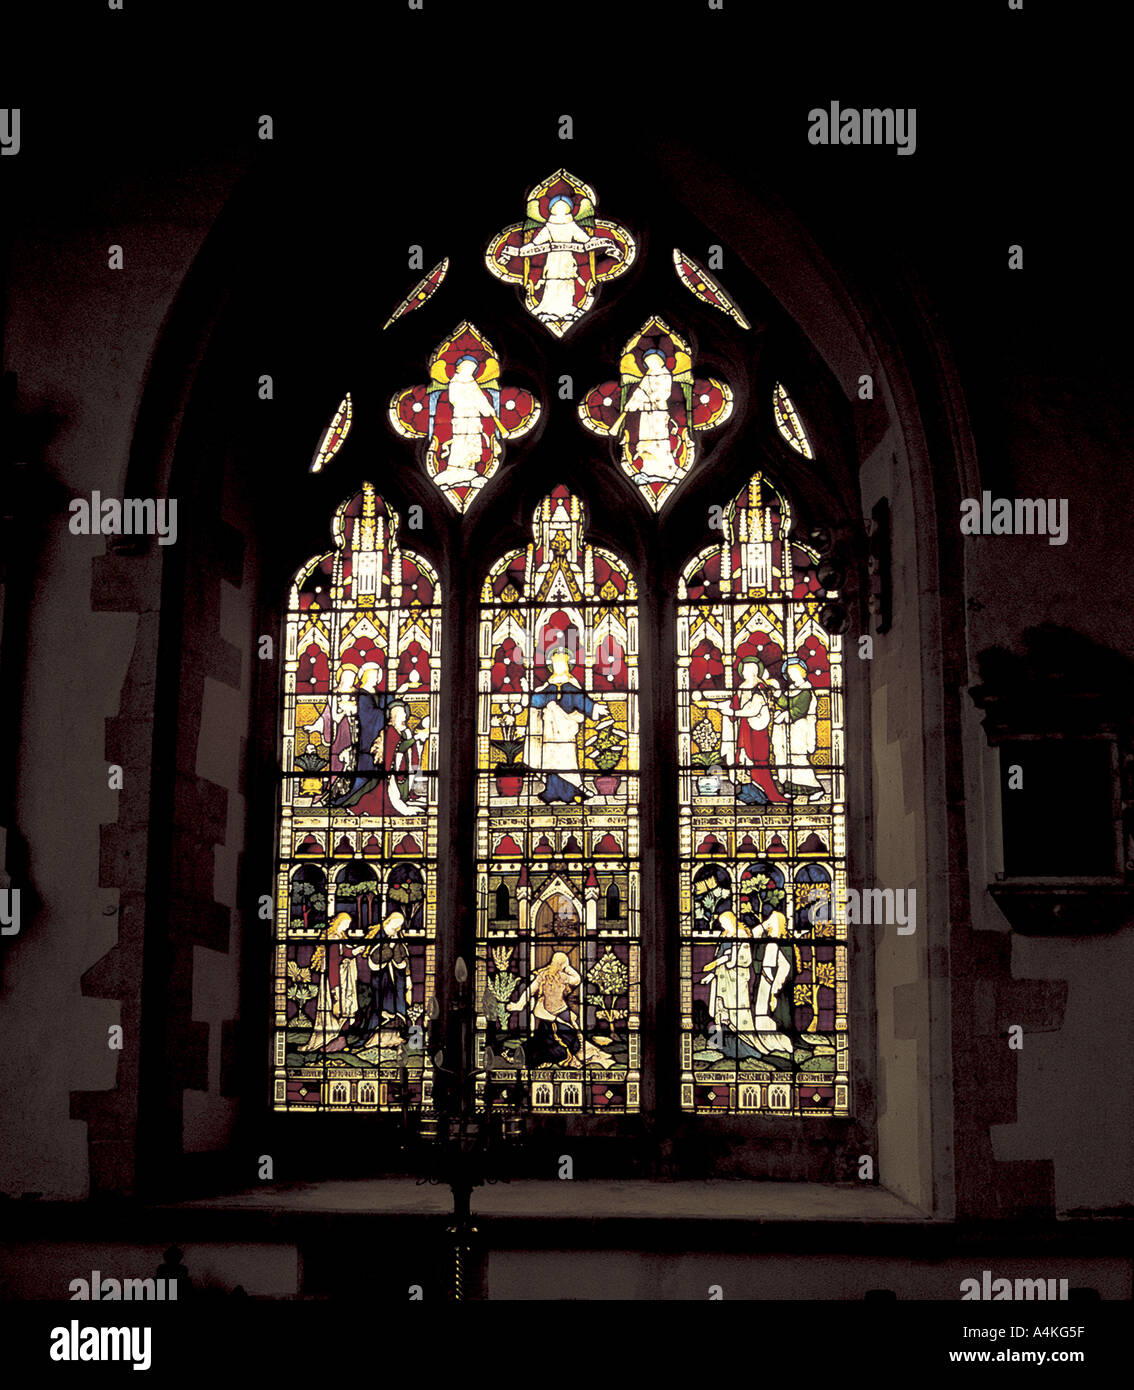 Stained glass in St Marys Church, Thame, Oxfordshire - Stock Image